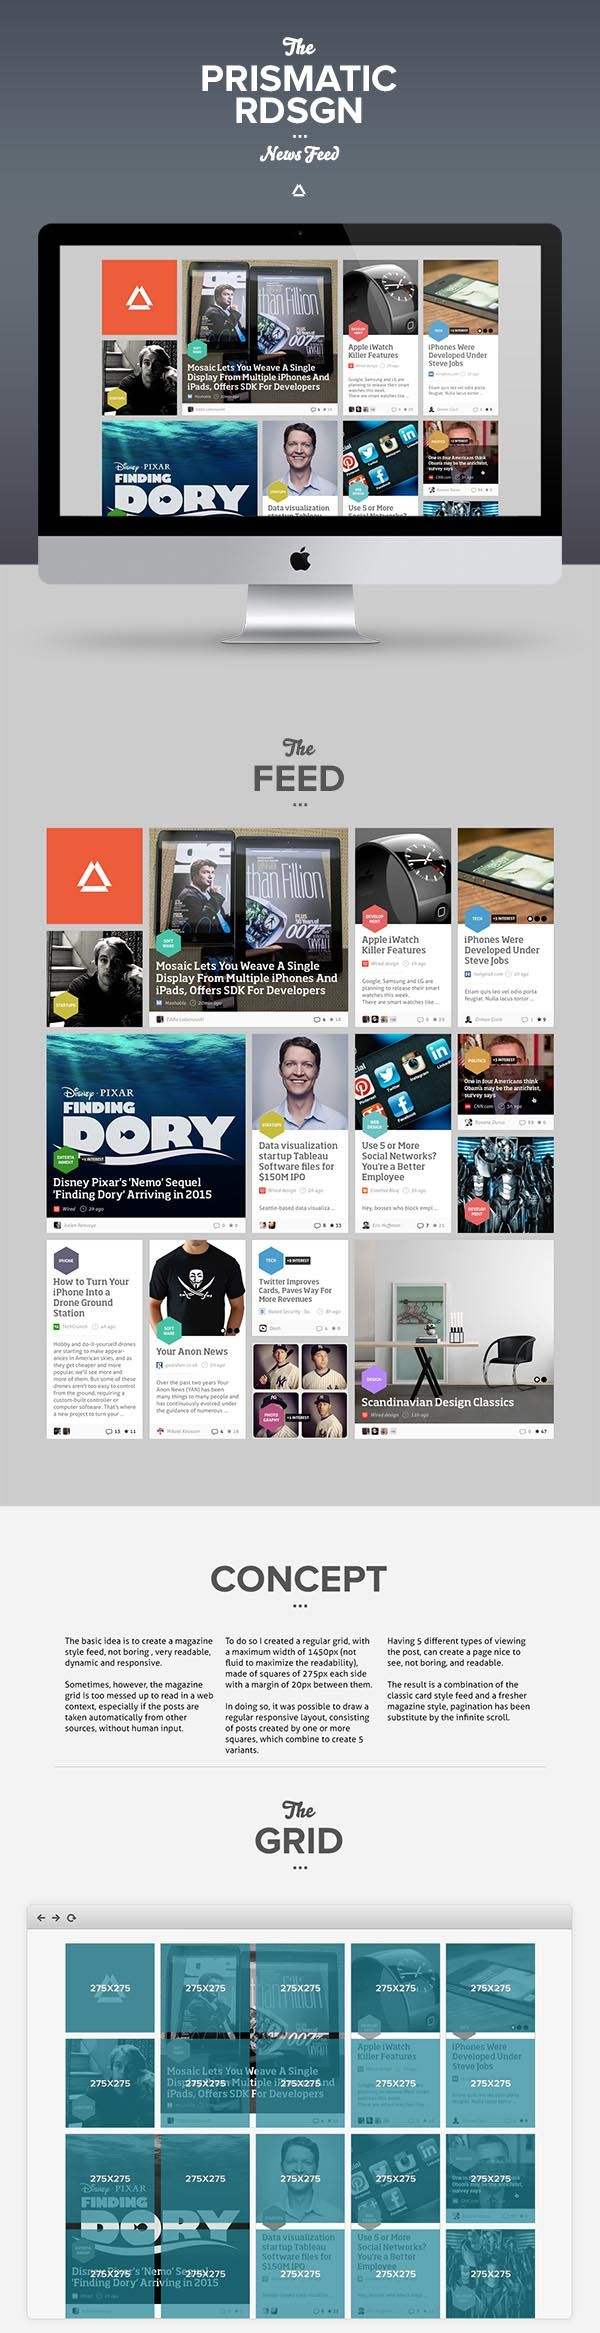 Prismatic - Web Design Concept by Enzo Li Volti for News Feed - WE AND THE COLOR